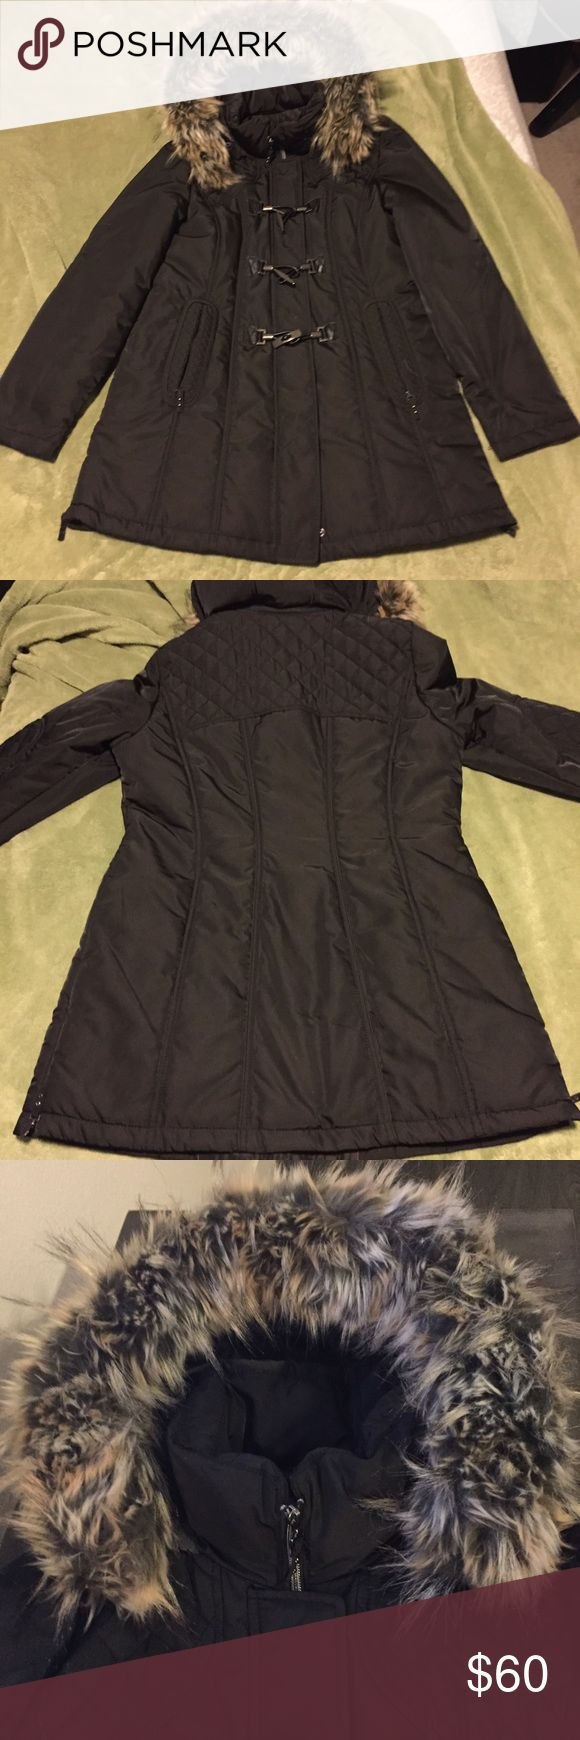 Warm Winter Coat from Germany This coat hits at mid thigh and it's so cute! It has a quilted detail on the shoulders and elbows and a detachable fur detail around the hood. This coat was purchased in Germany and is very flattering on the female body. gina Jackets & Coats Puffers